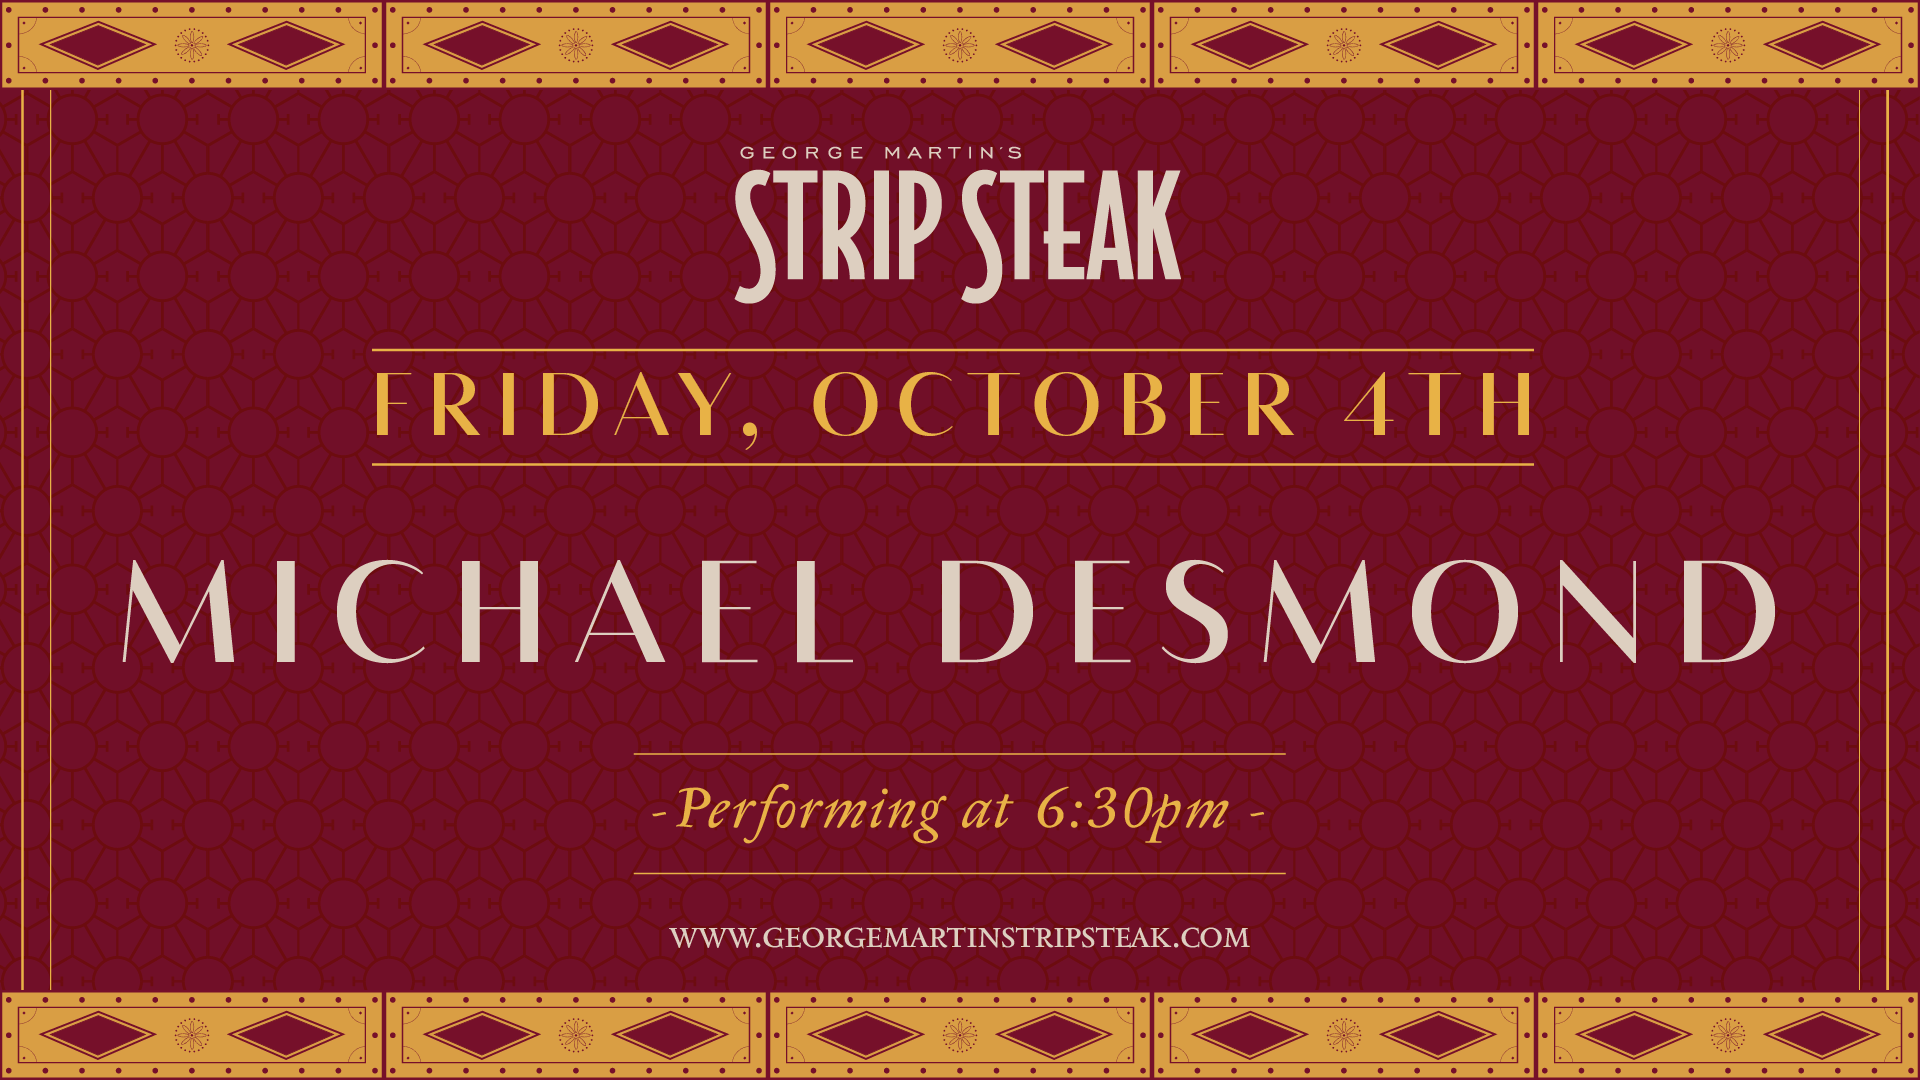 Flyer for live music with Michael Desmond on Friday, October 4th at 6:30pm.